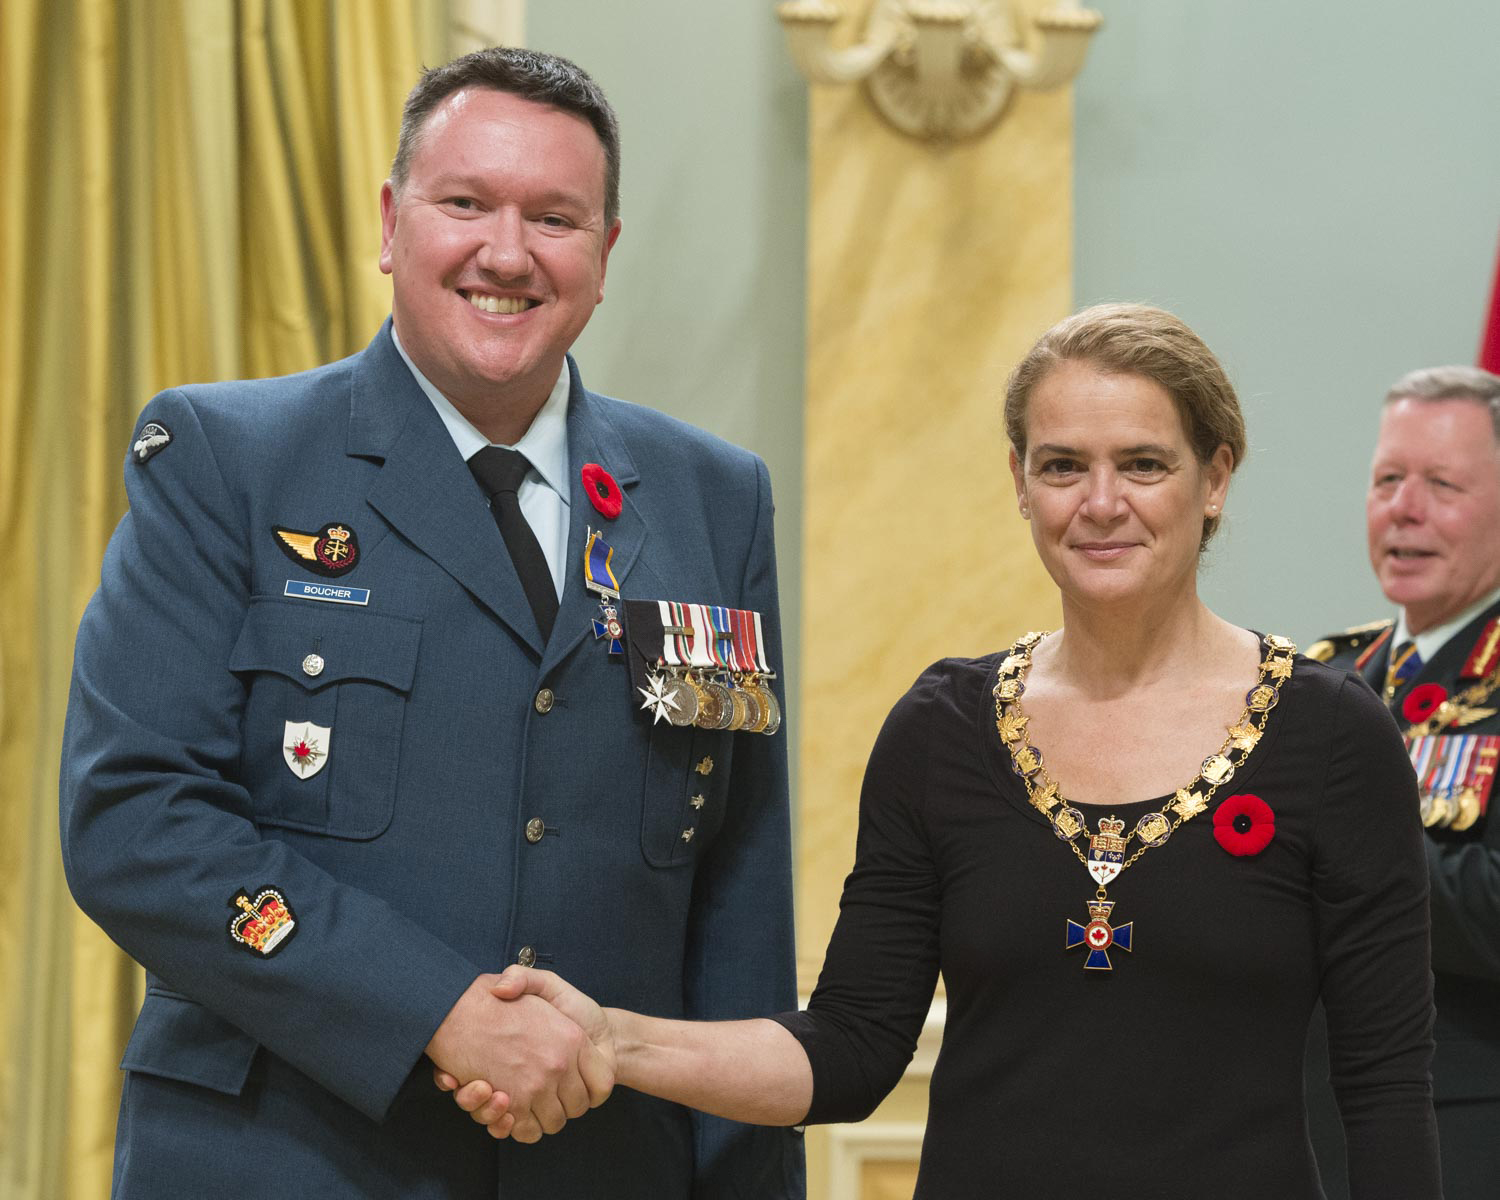 Her Excellency presented the Order of Military Merit at the Member level (M.M.M.) to Warrant Officer Marc Joseph Luc Boucher, M.M.M., C.D., from the Canadian Forces Intelligence Command Headquarters, in Ottawa, Ontario.